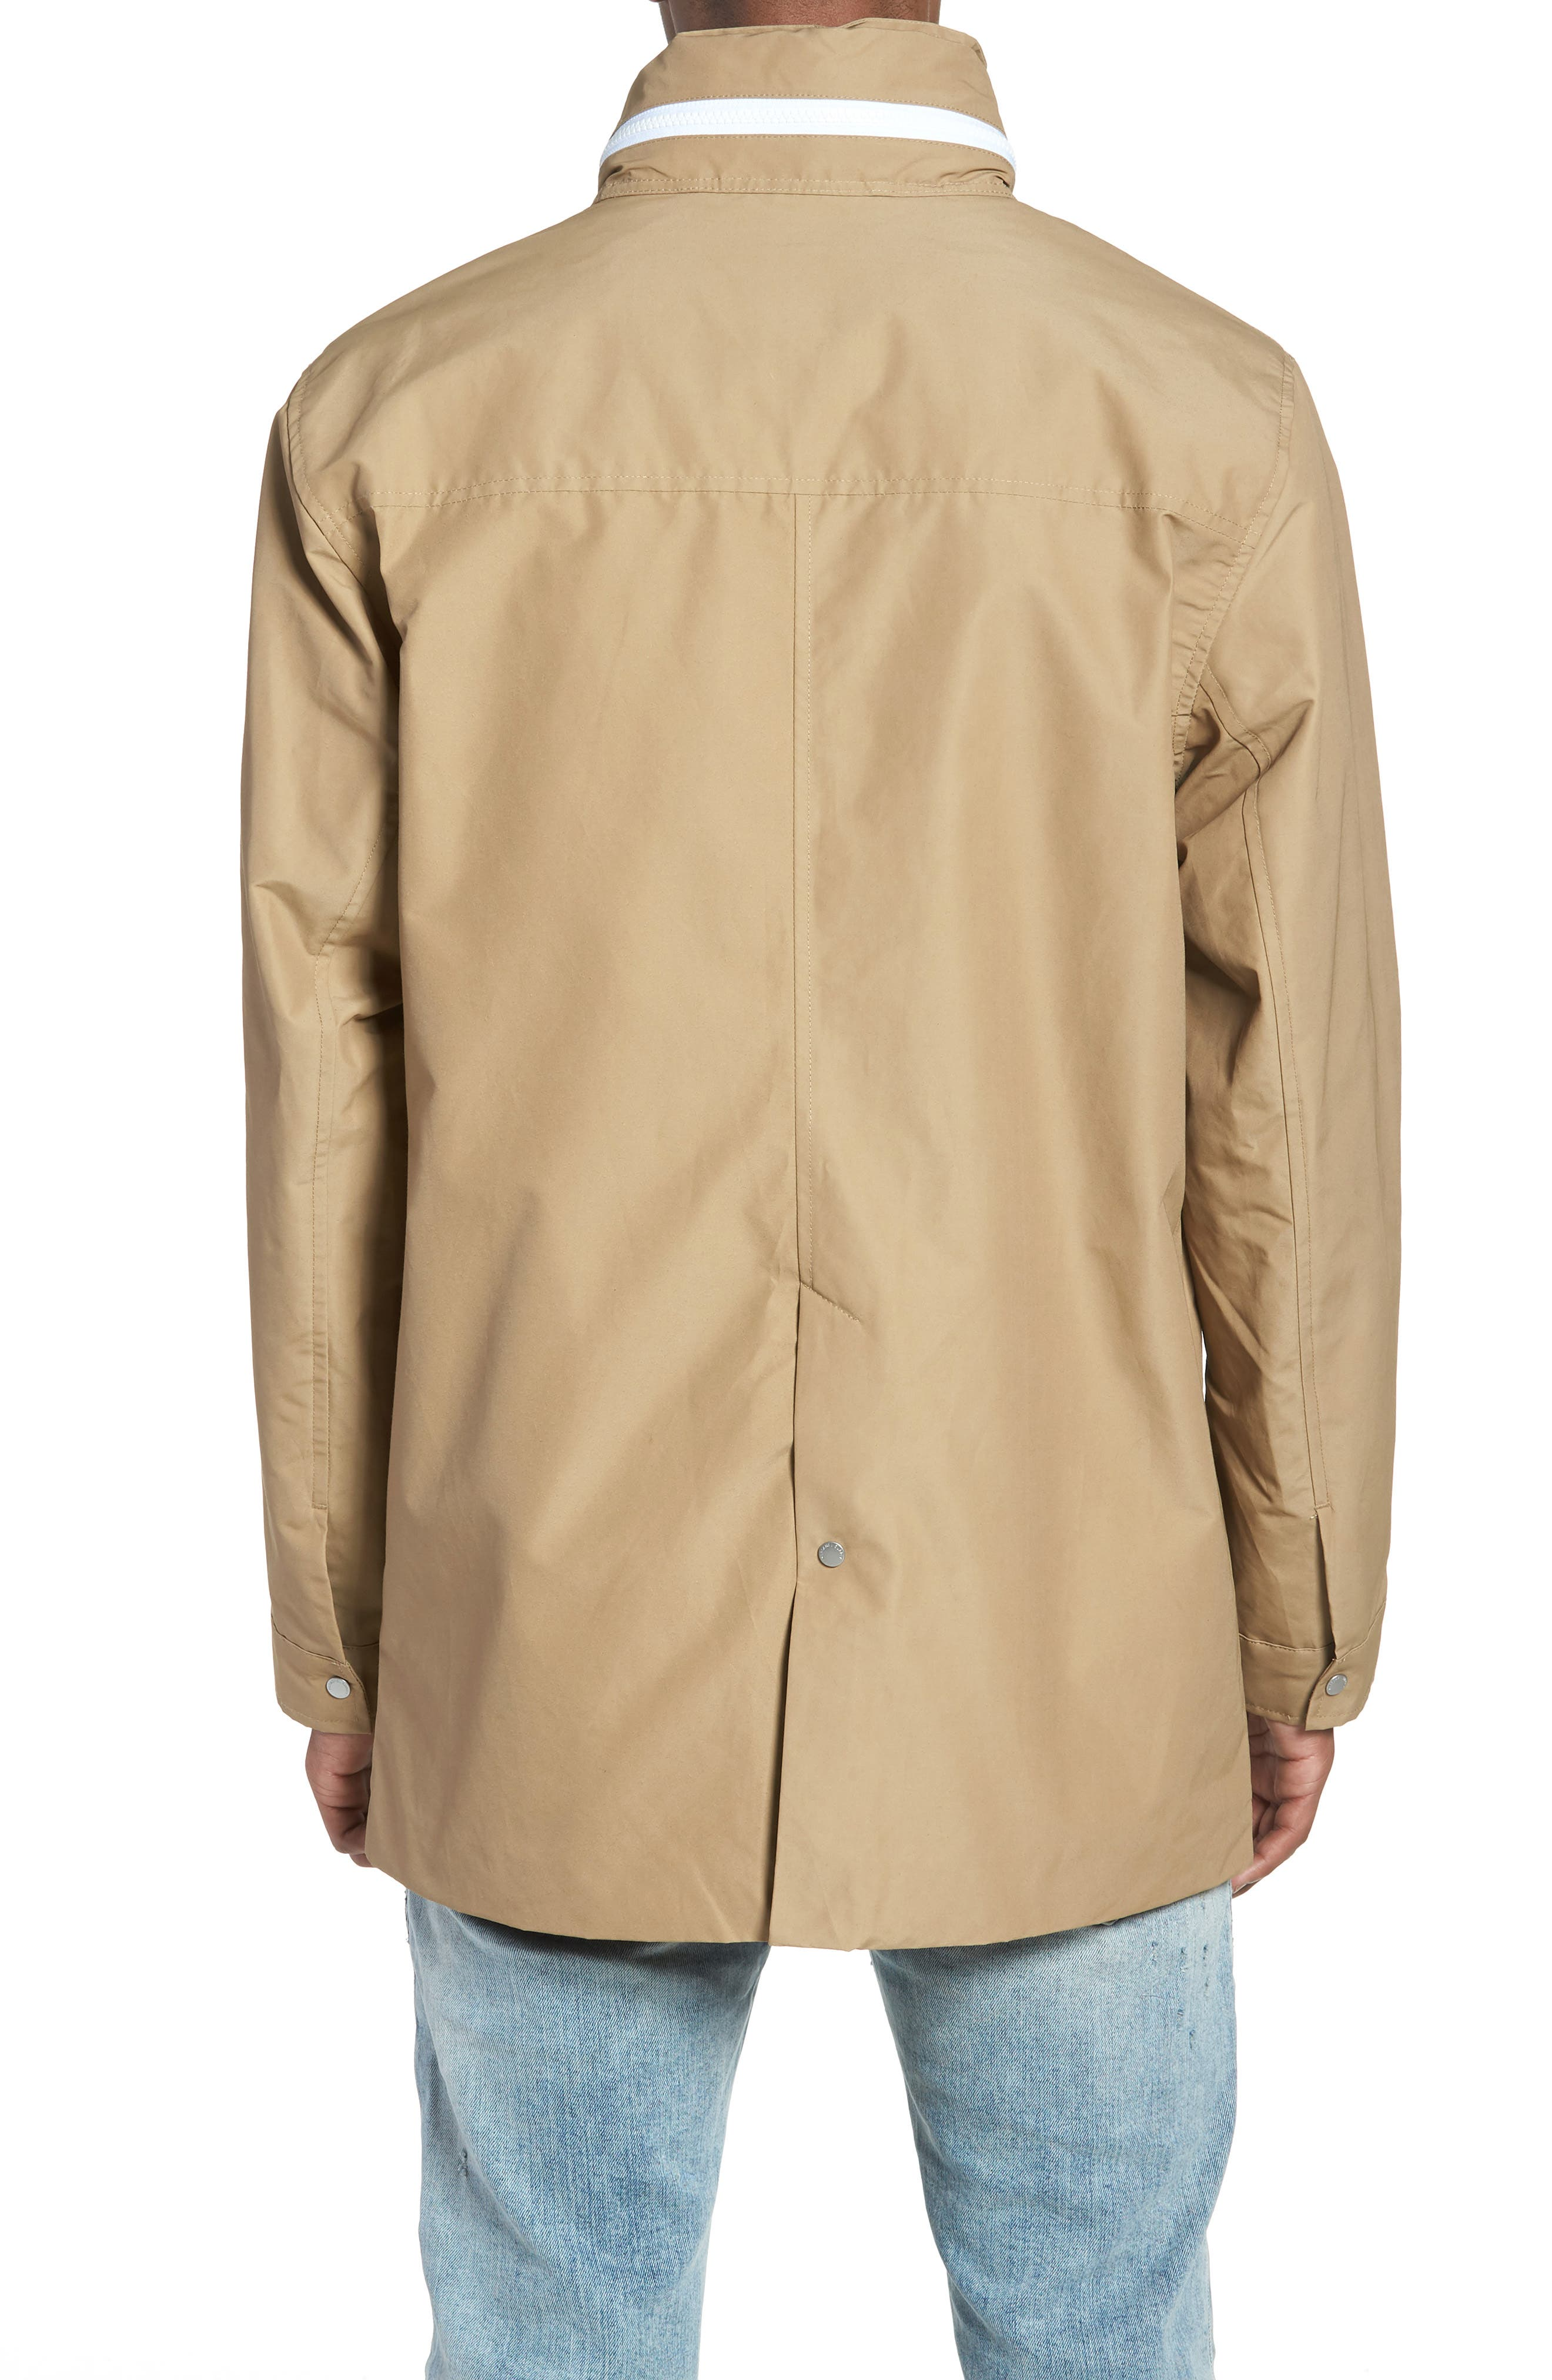 Stowaway Mac Jacket,                             Alternate thumbnail 2, color,                             Khaki/ Woodland Camo